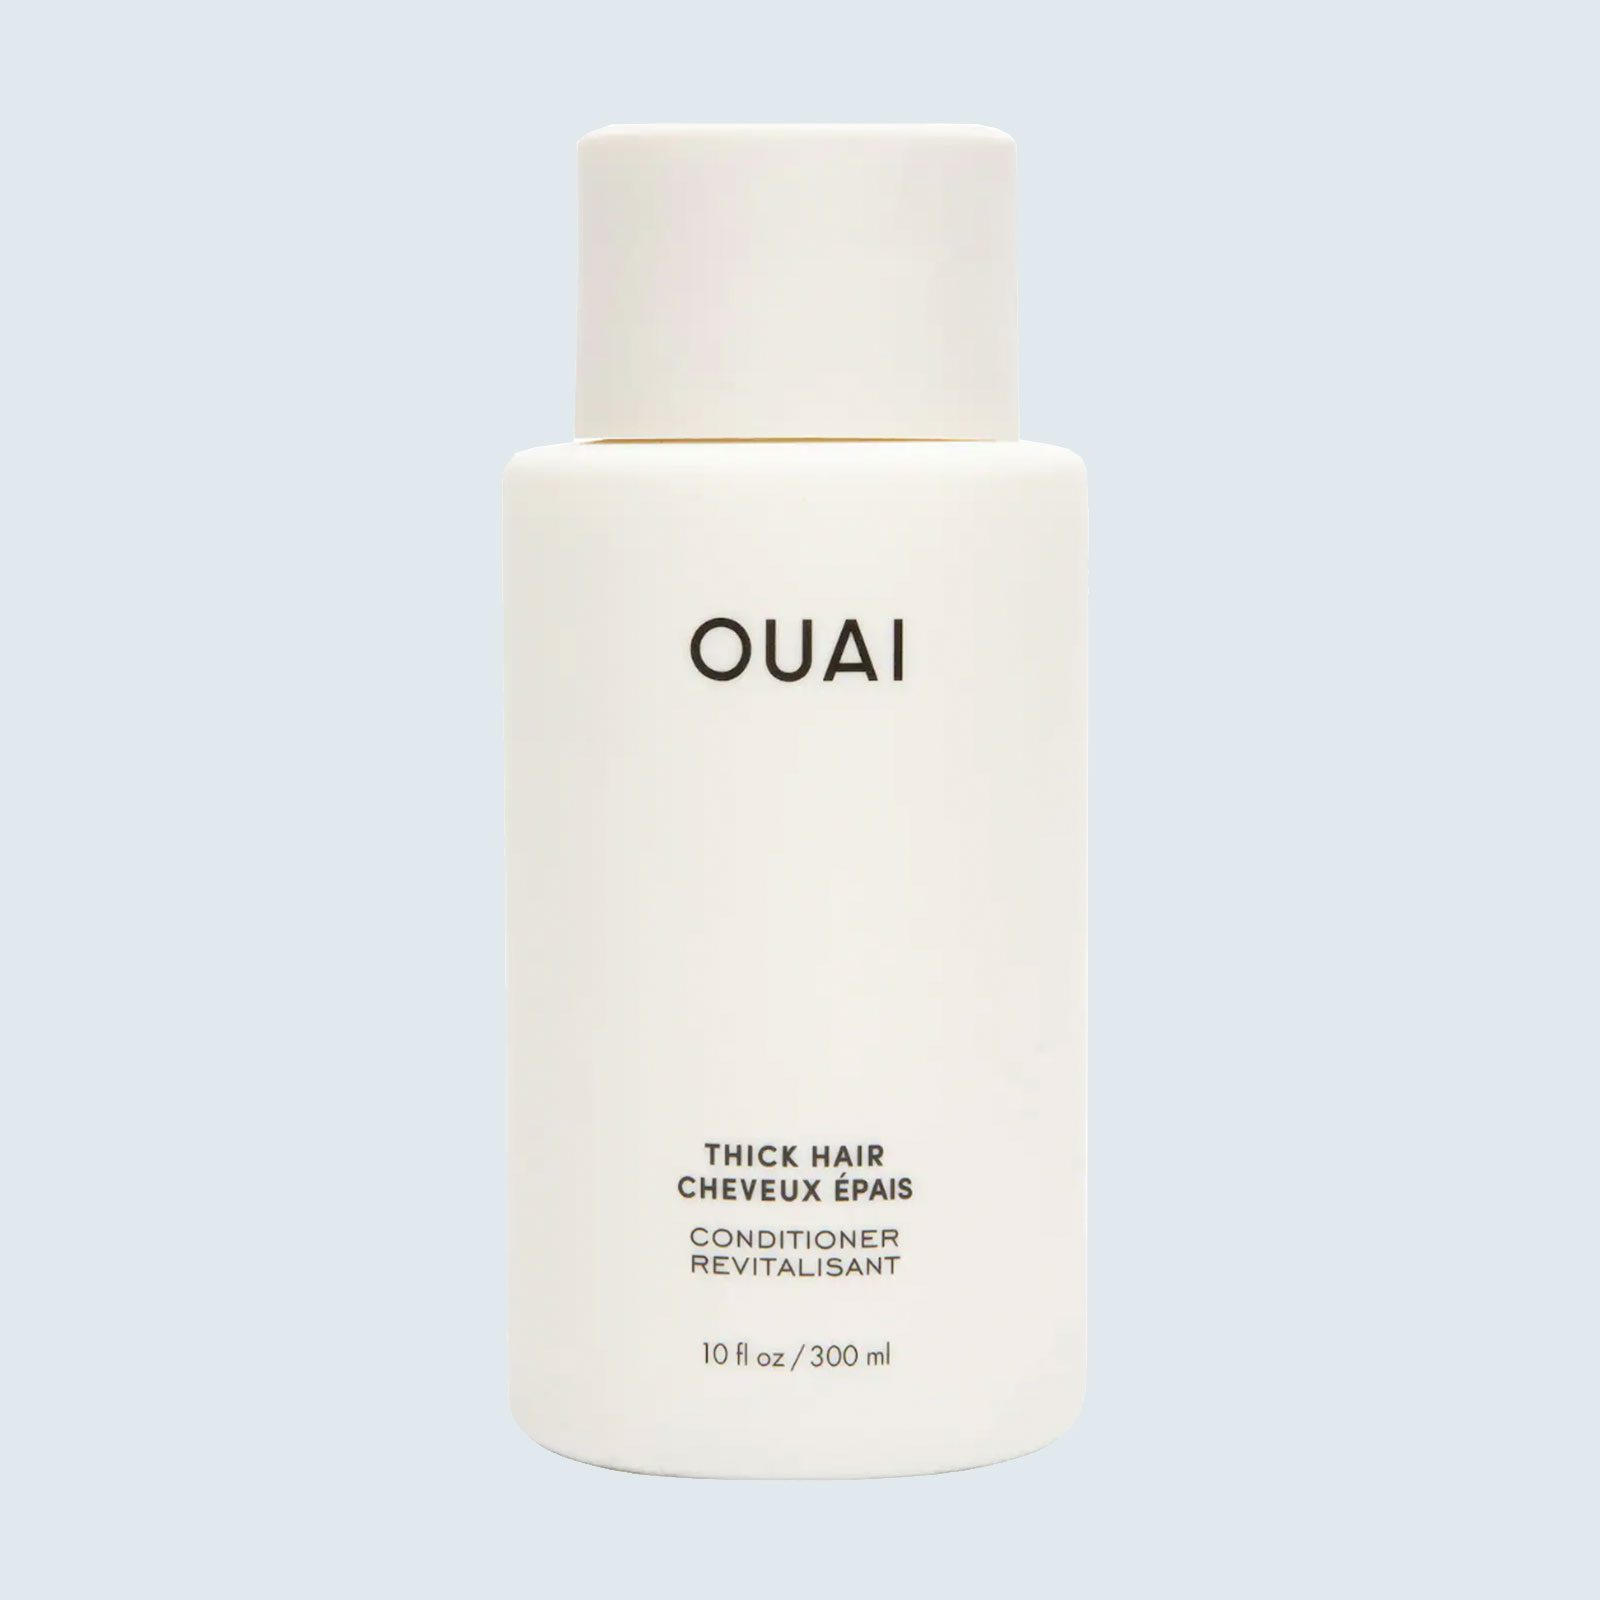 Best conditioner for thick hair: Ouai Thick Hair Conditioner